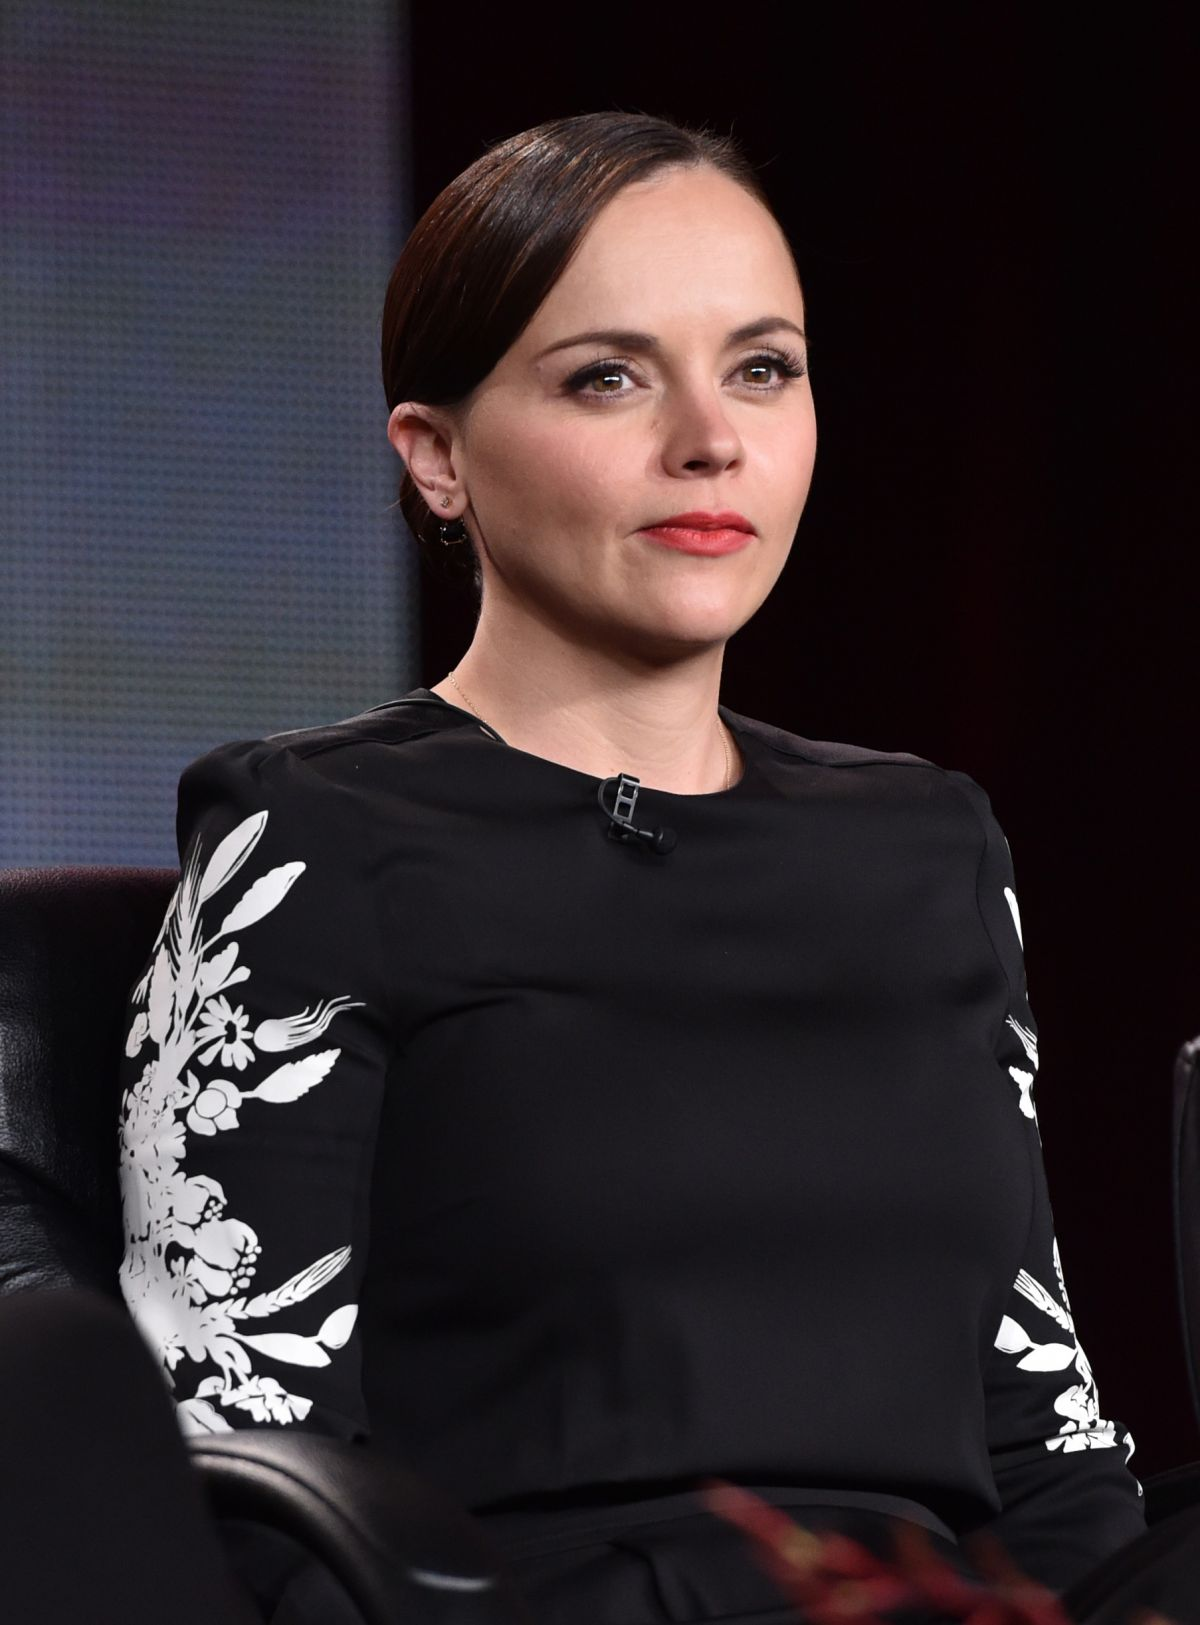 CHRISTINA RICCI The Lizie Borden Chronicles Panel TCA Press Tour in ...